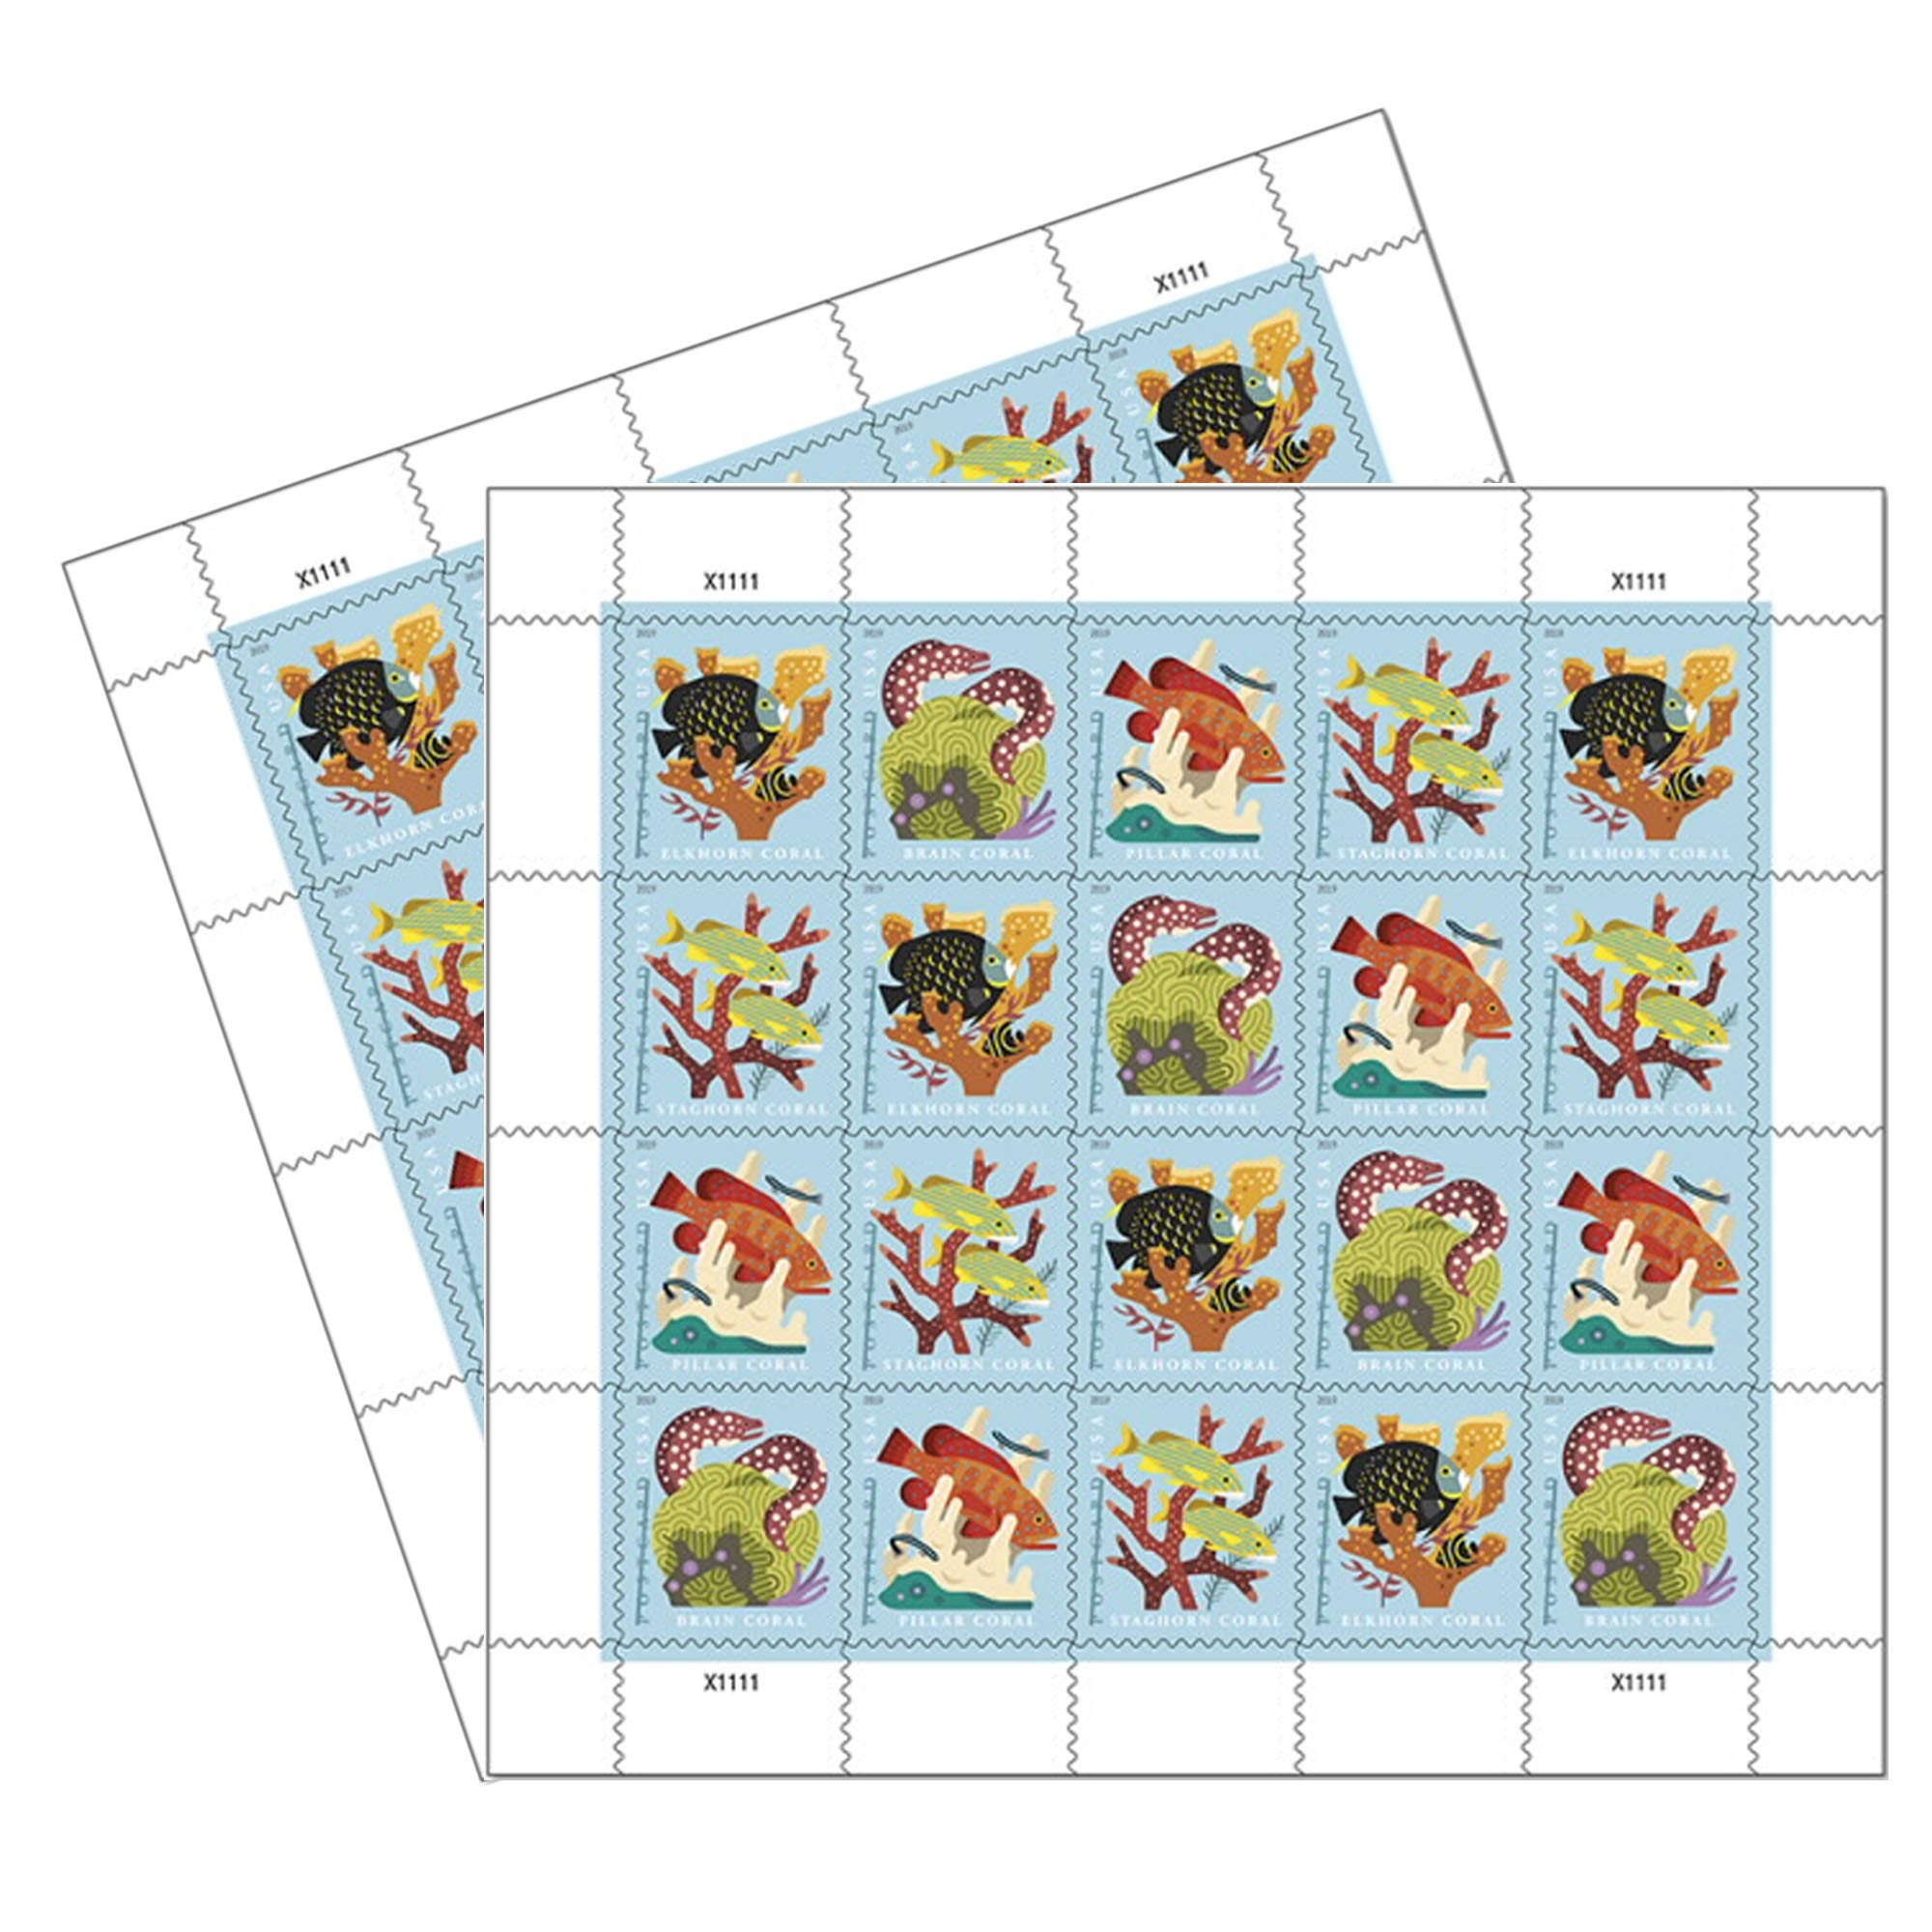 Coral Reefs Postcard 2 Sheets of 20 US First Class Forever POSTCARD Postage Stamps Sea (40 Stamps) by USPS